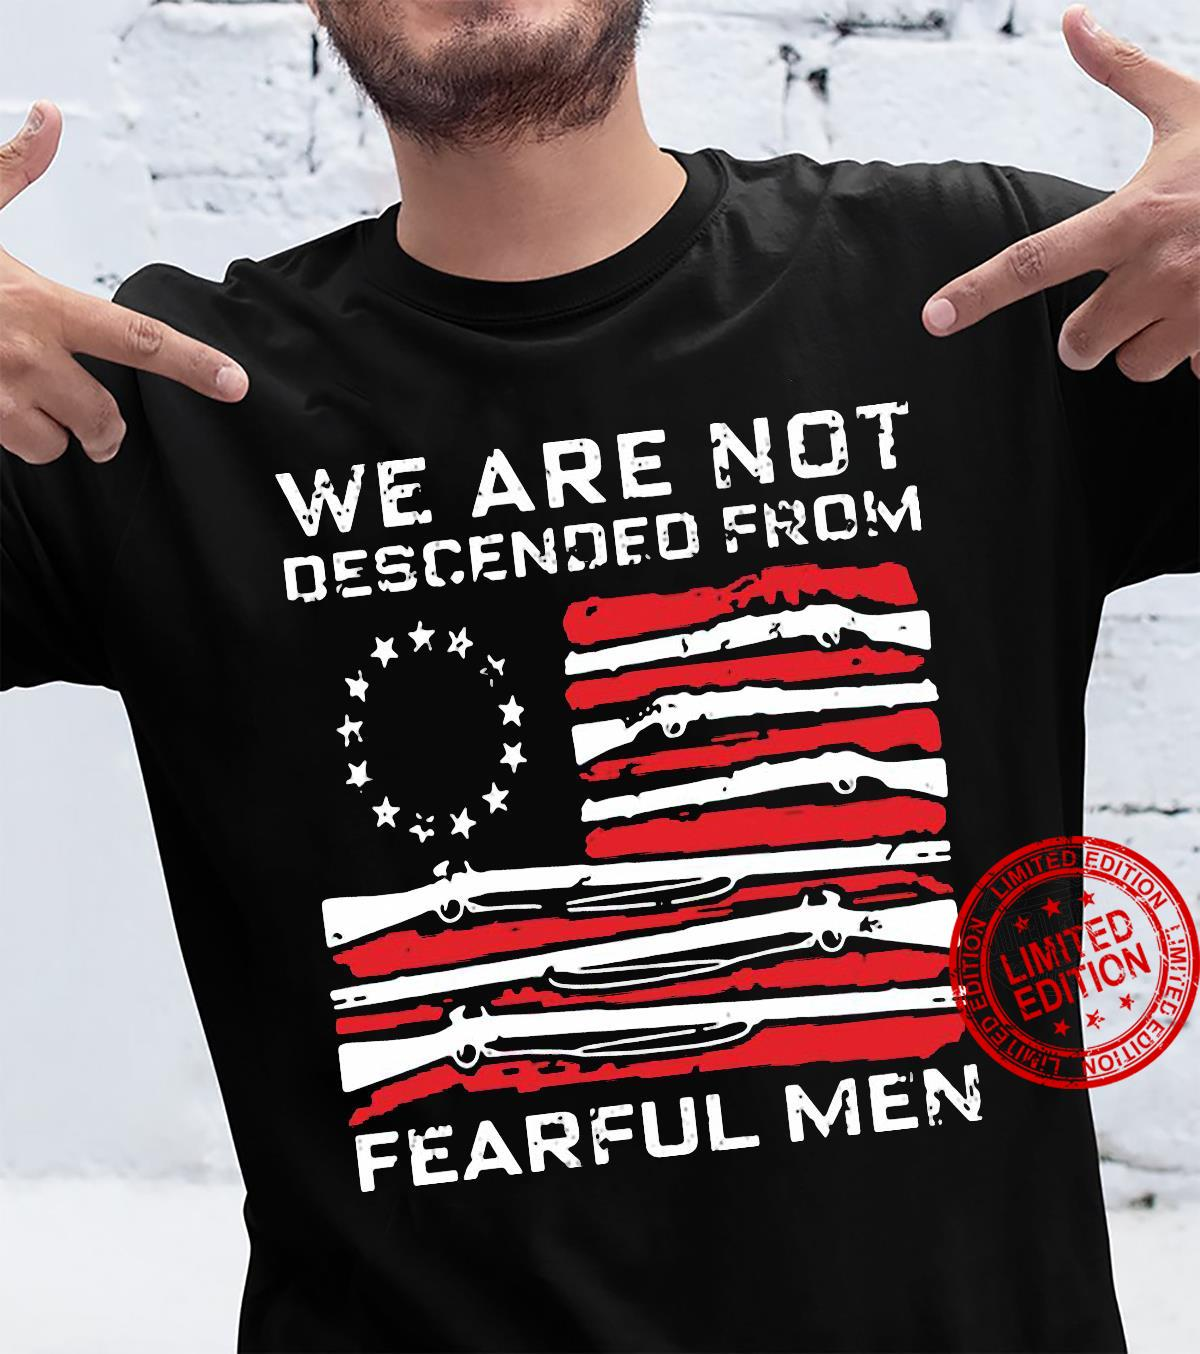 We are not descended from fearful men Men T-Shirt